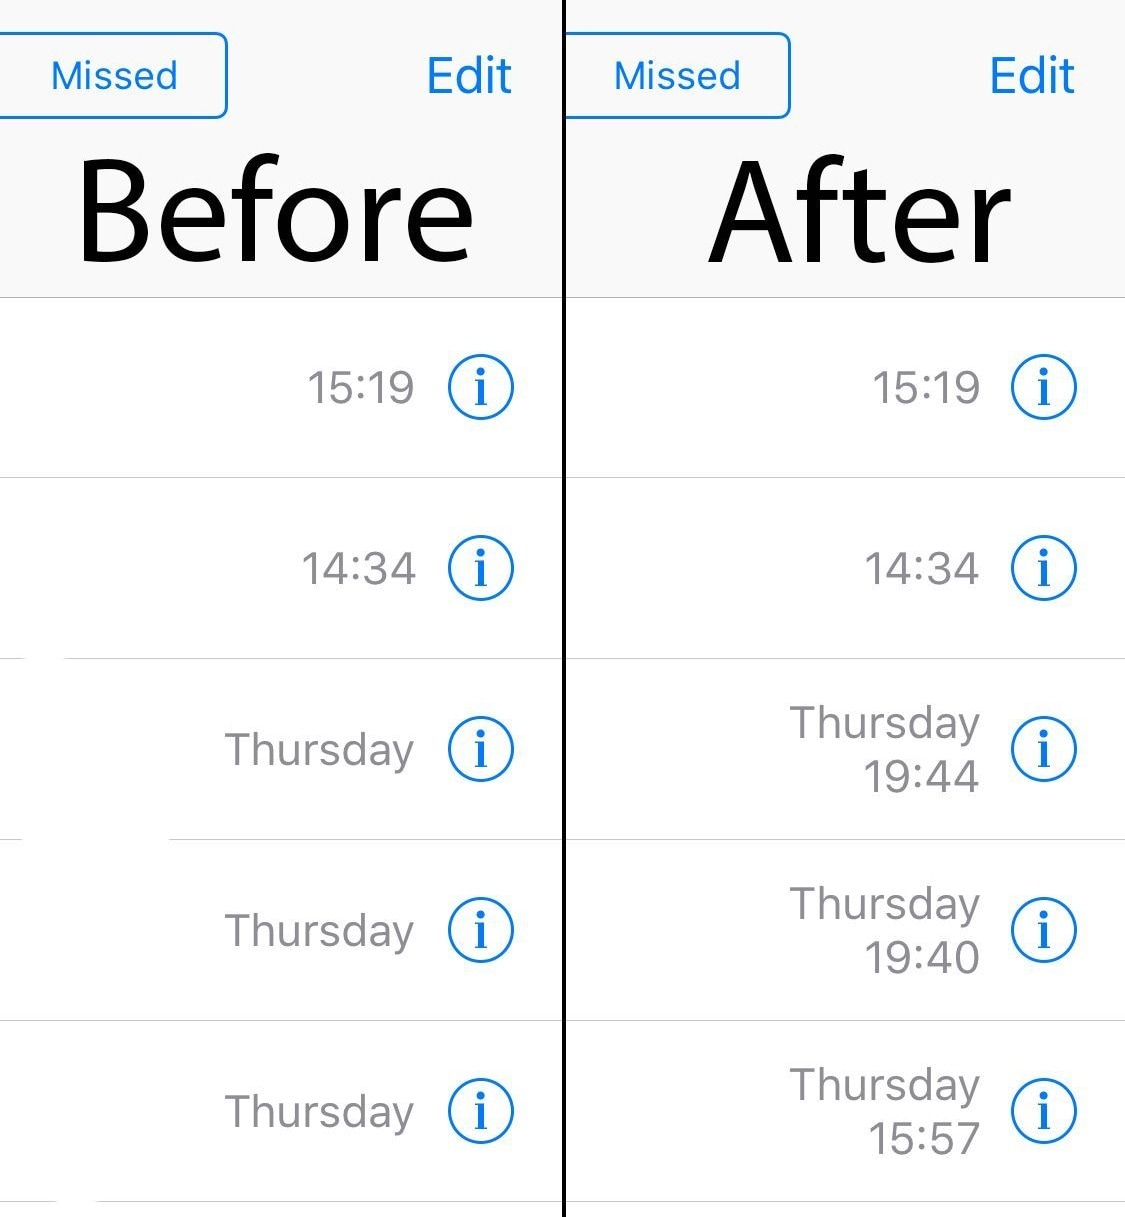 This tweak improves the timestamps in your iPhone's call